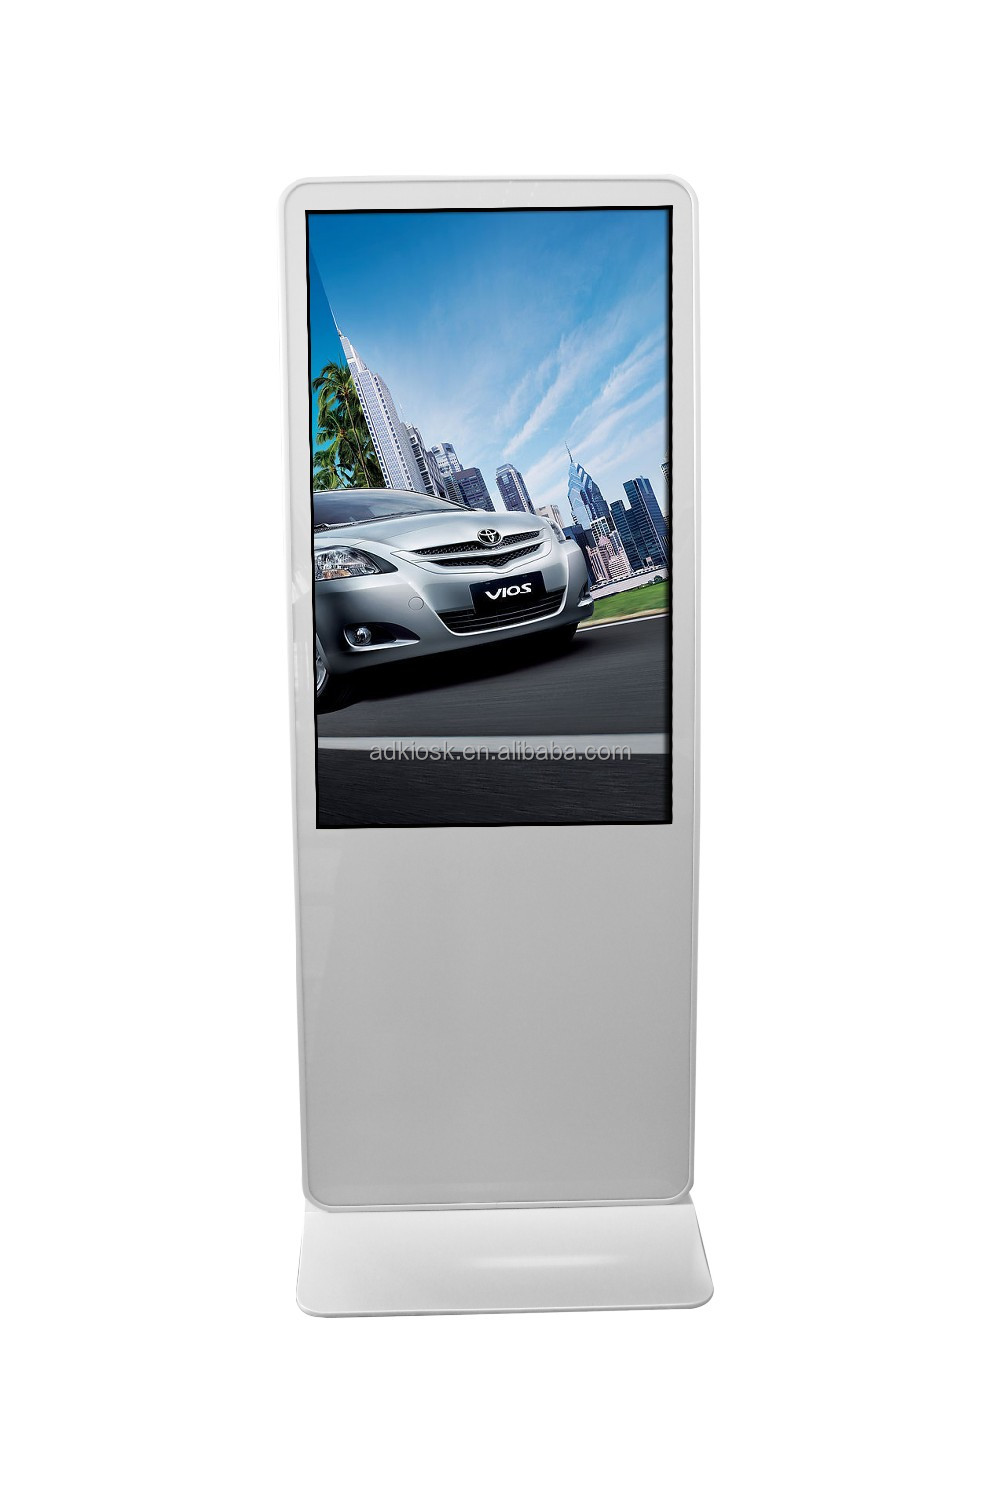 Creative 55 inch hall standing Iphone design kaiboer media player interactive kiosk prices